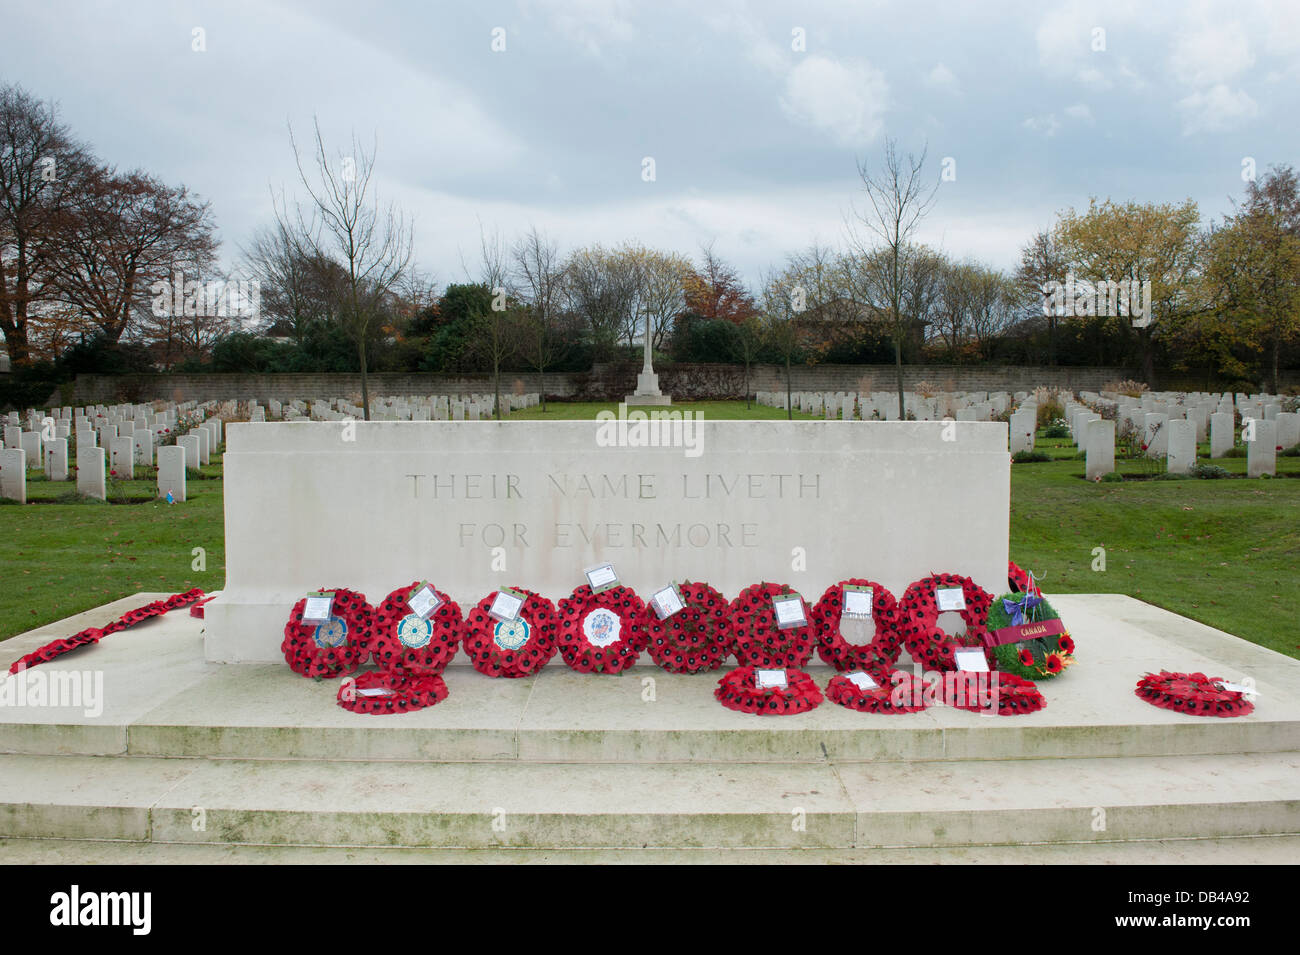 Rows of war graves & red poppy wreaths laid on Stone of Rememberance after ceremony - Stonefall Cemetery, Harrogate, Stock Photo